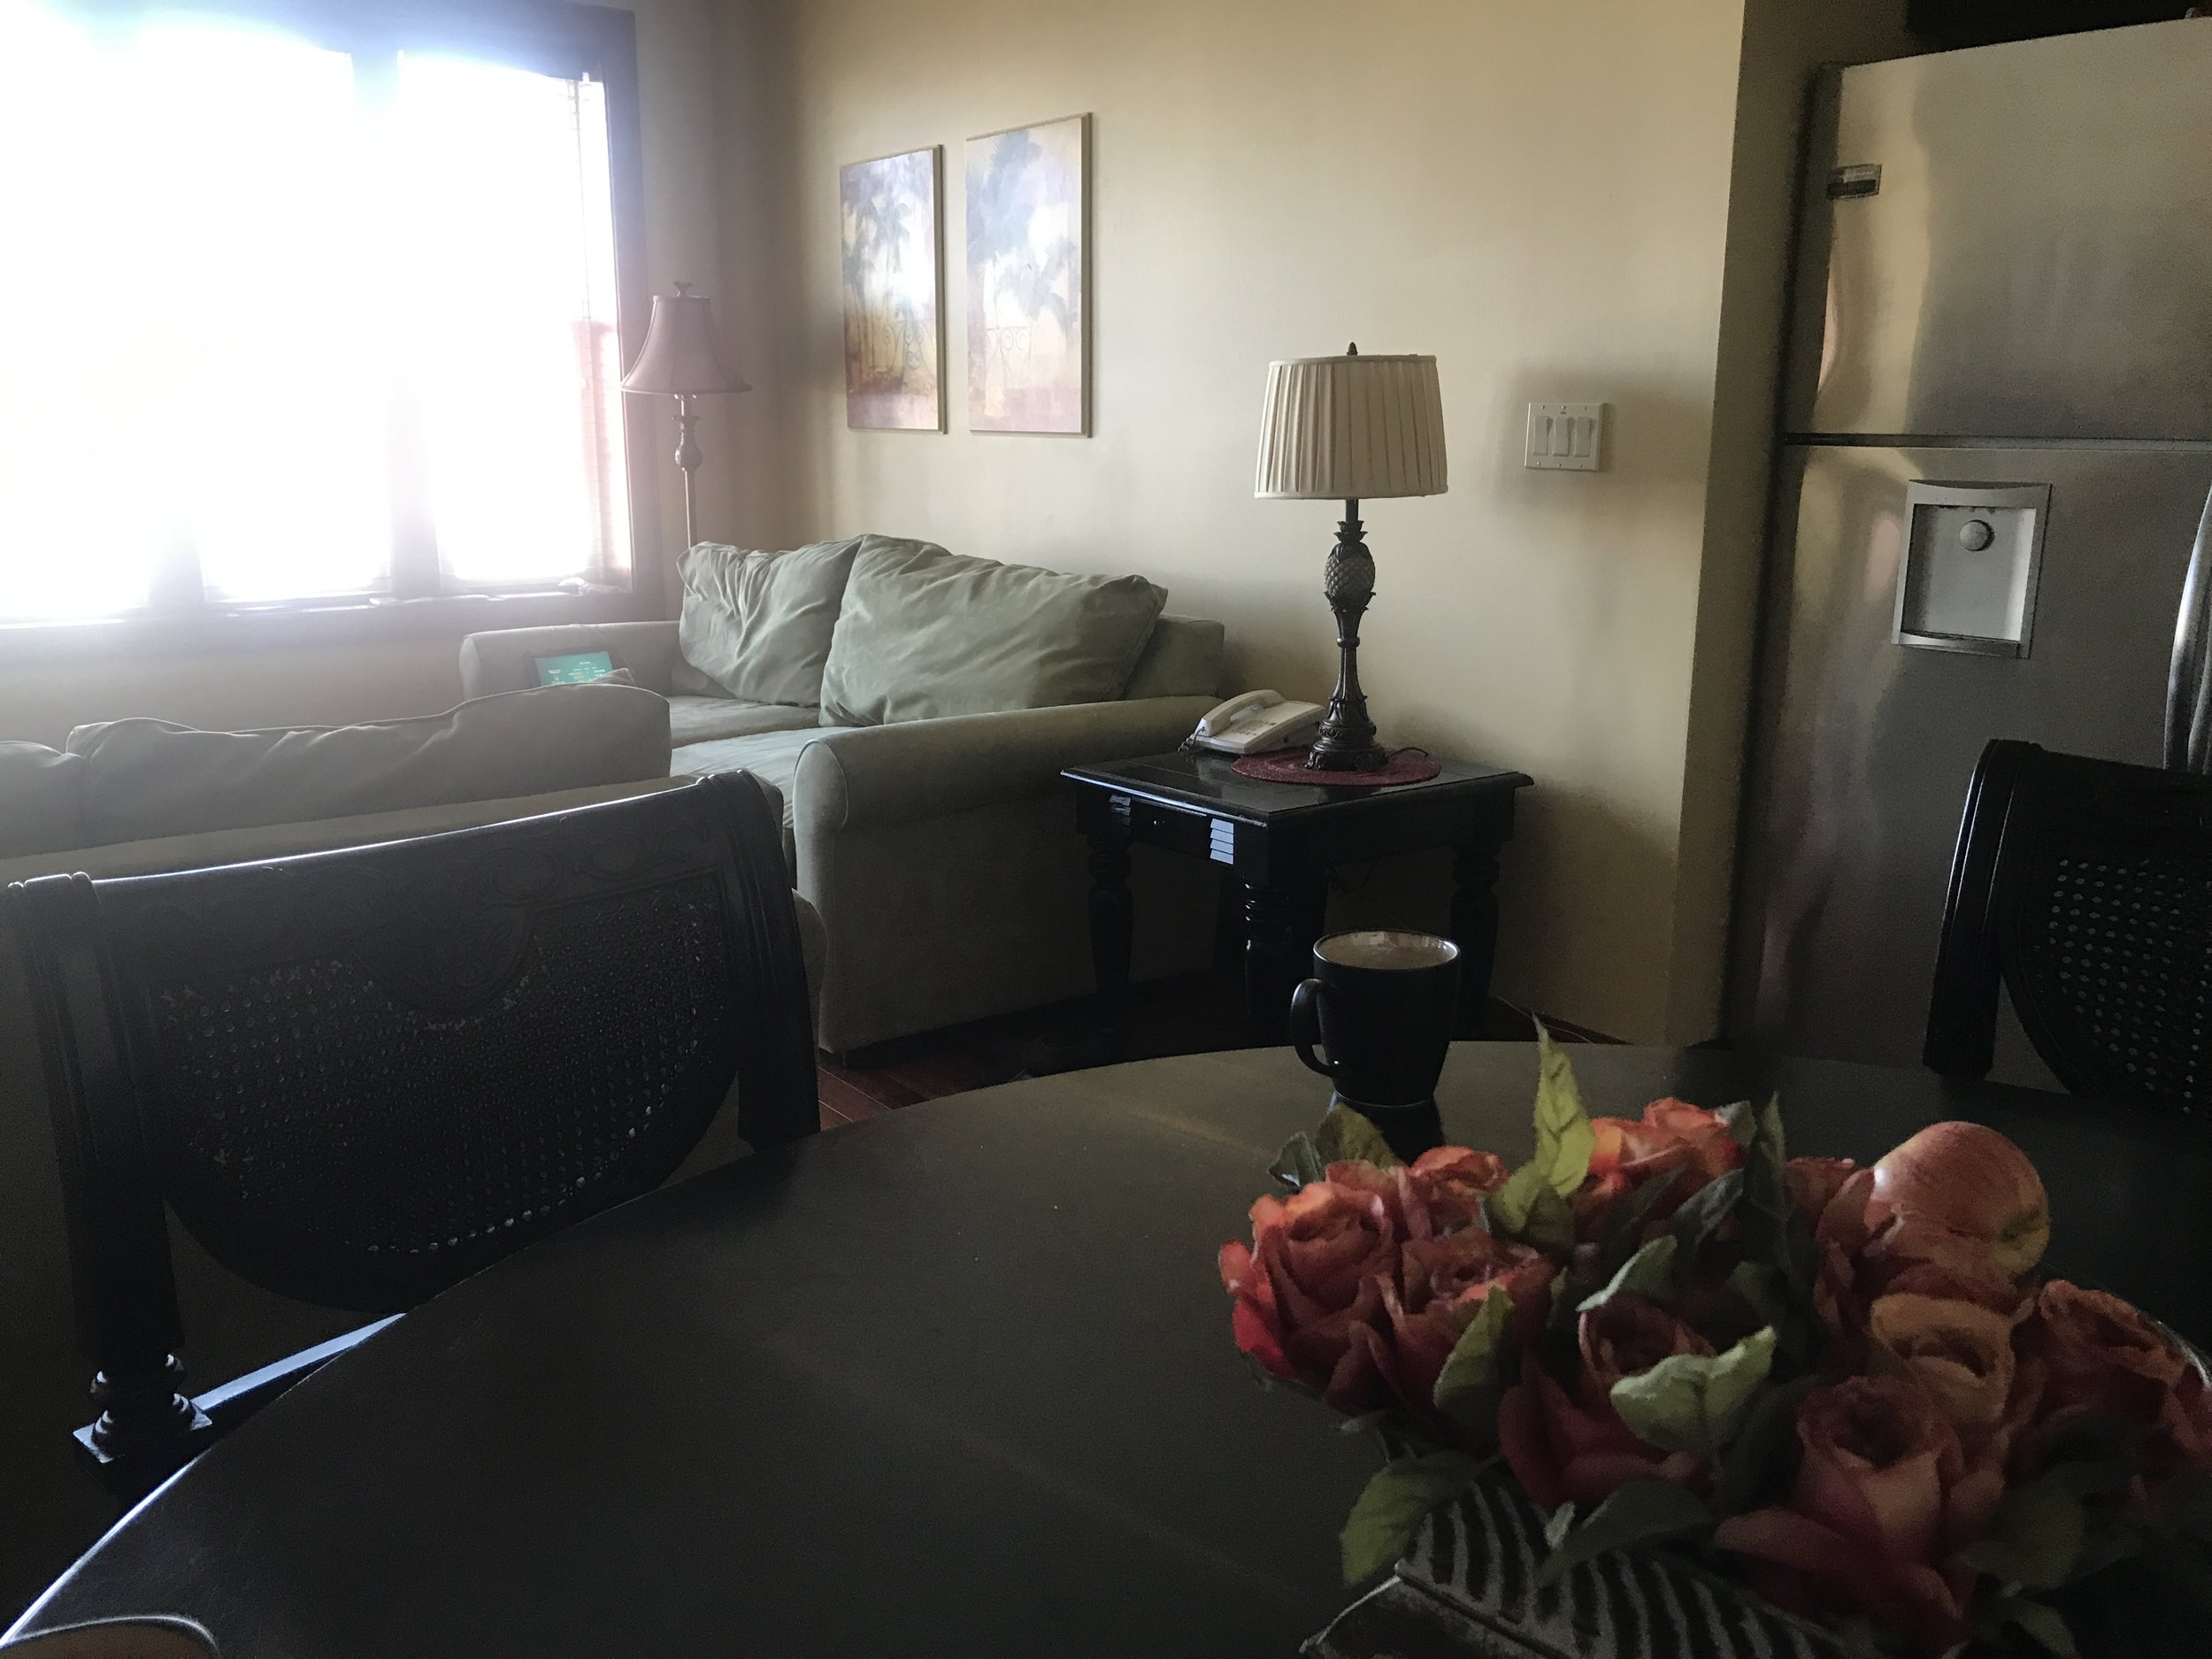 the-new-room-ocnj-2019.JPG